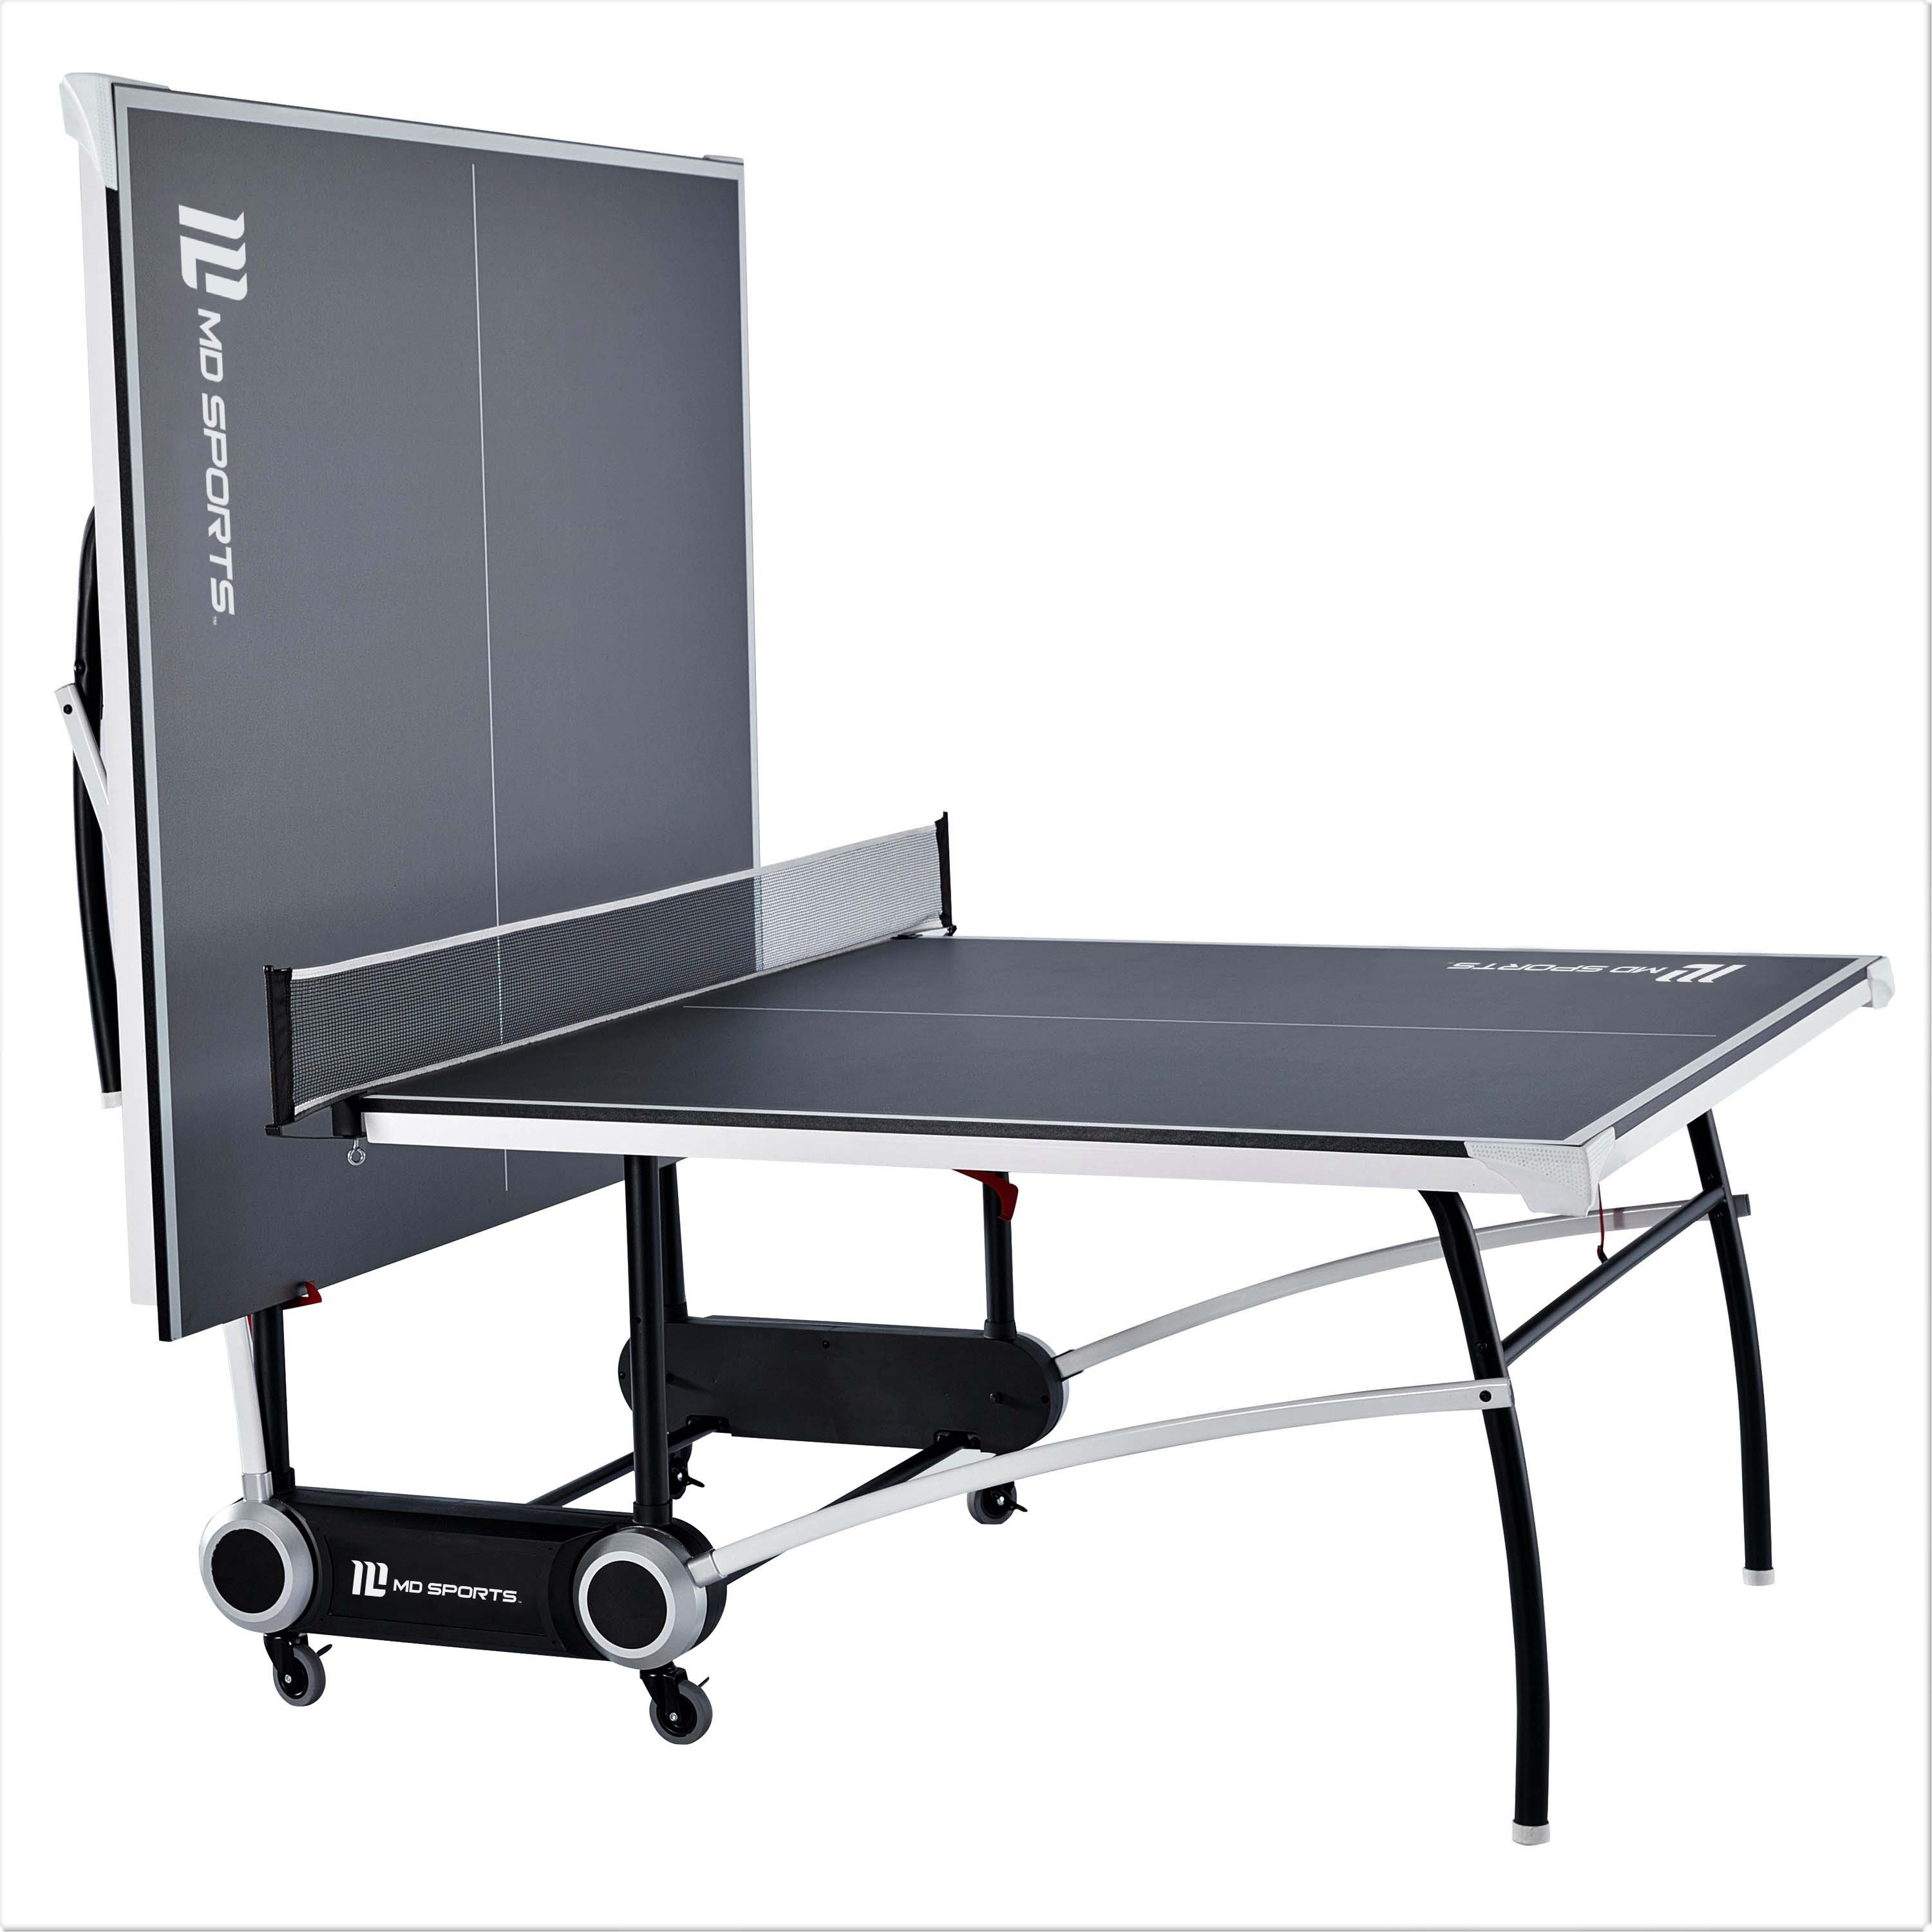 MD Sports 2-Piece Official Size Table Tennis Table, Includes Set of Post and Net, Sturdy Steel Leg Construction, Gray